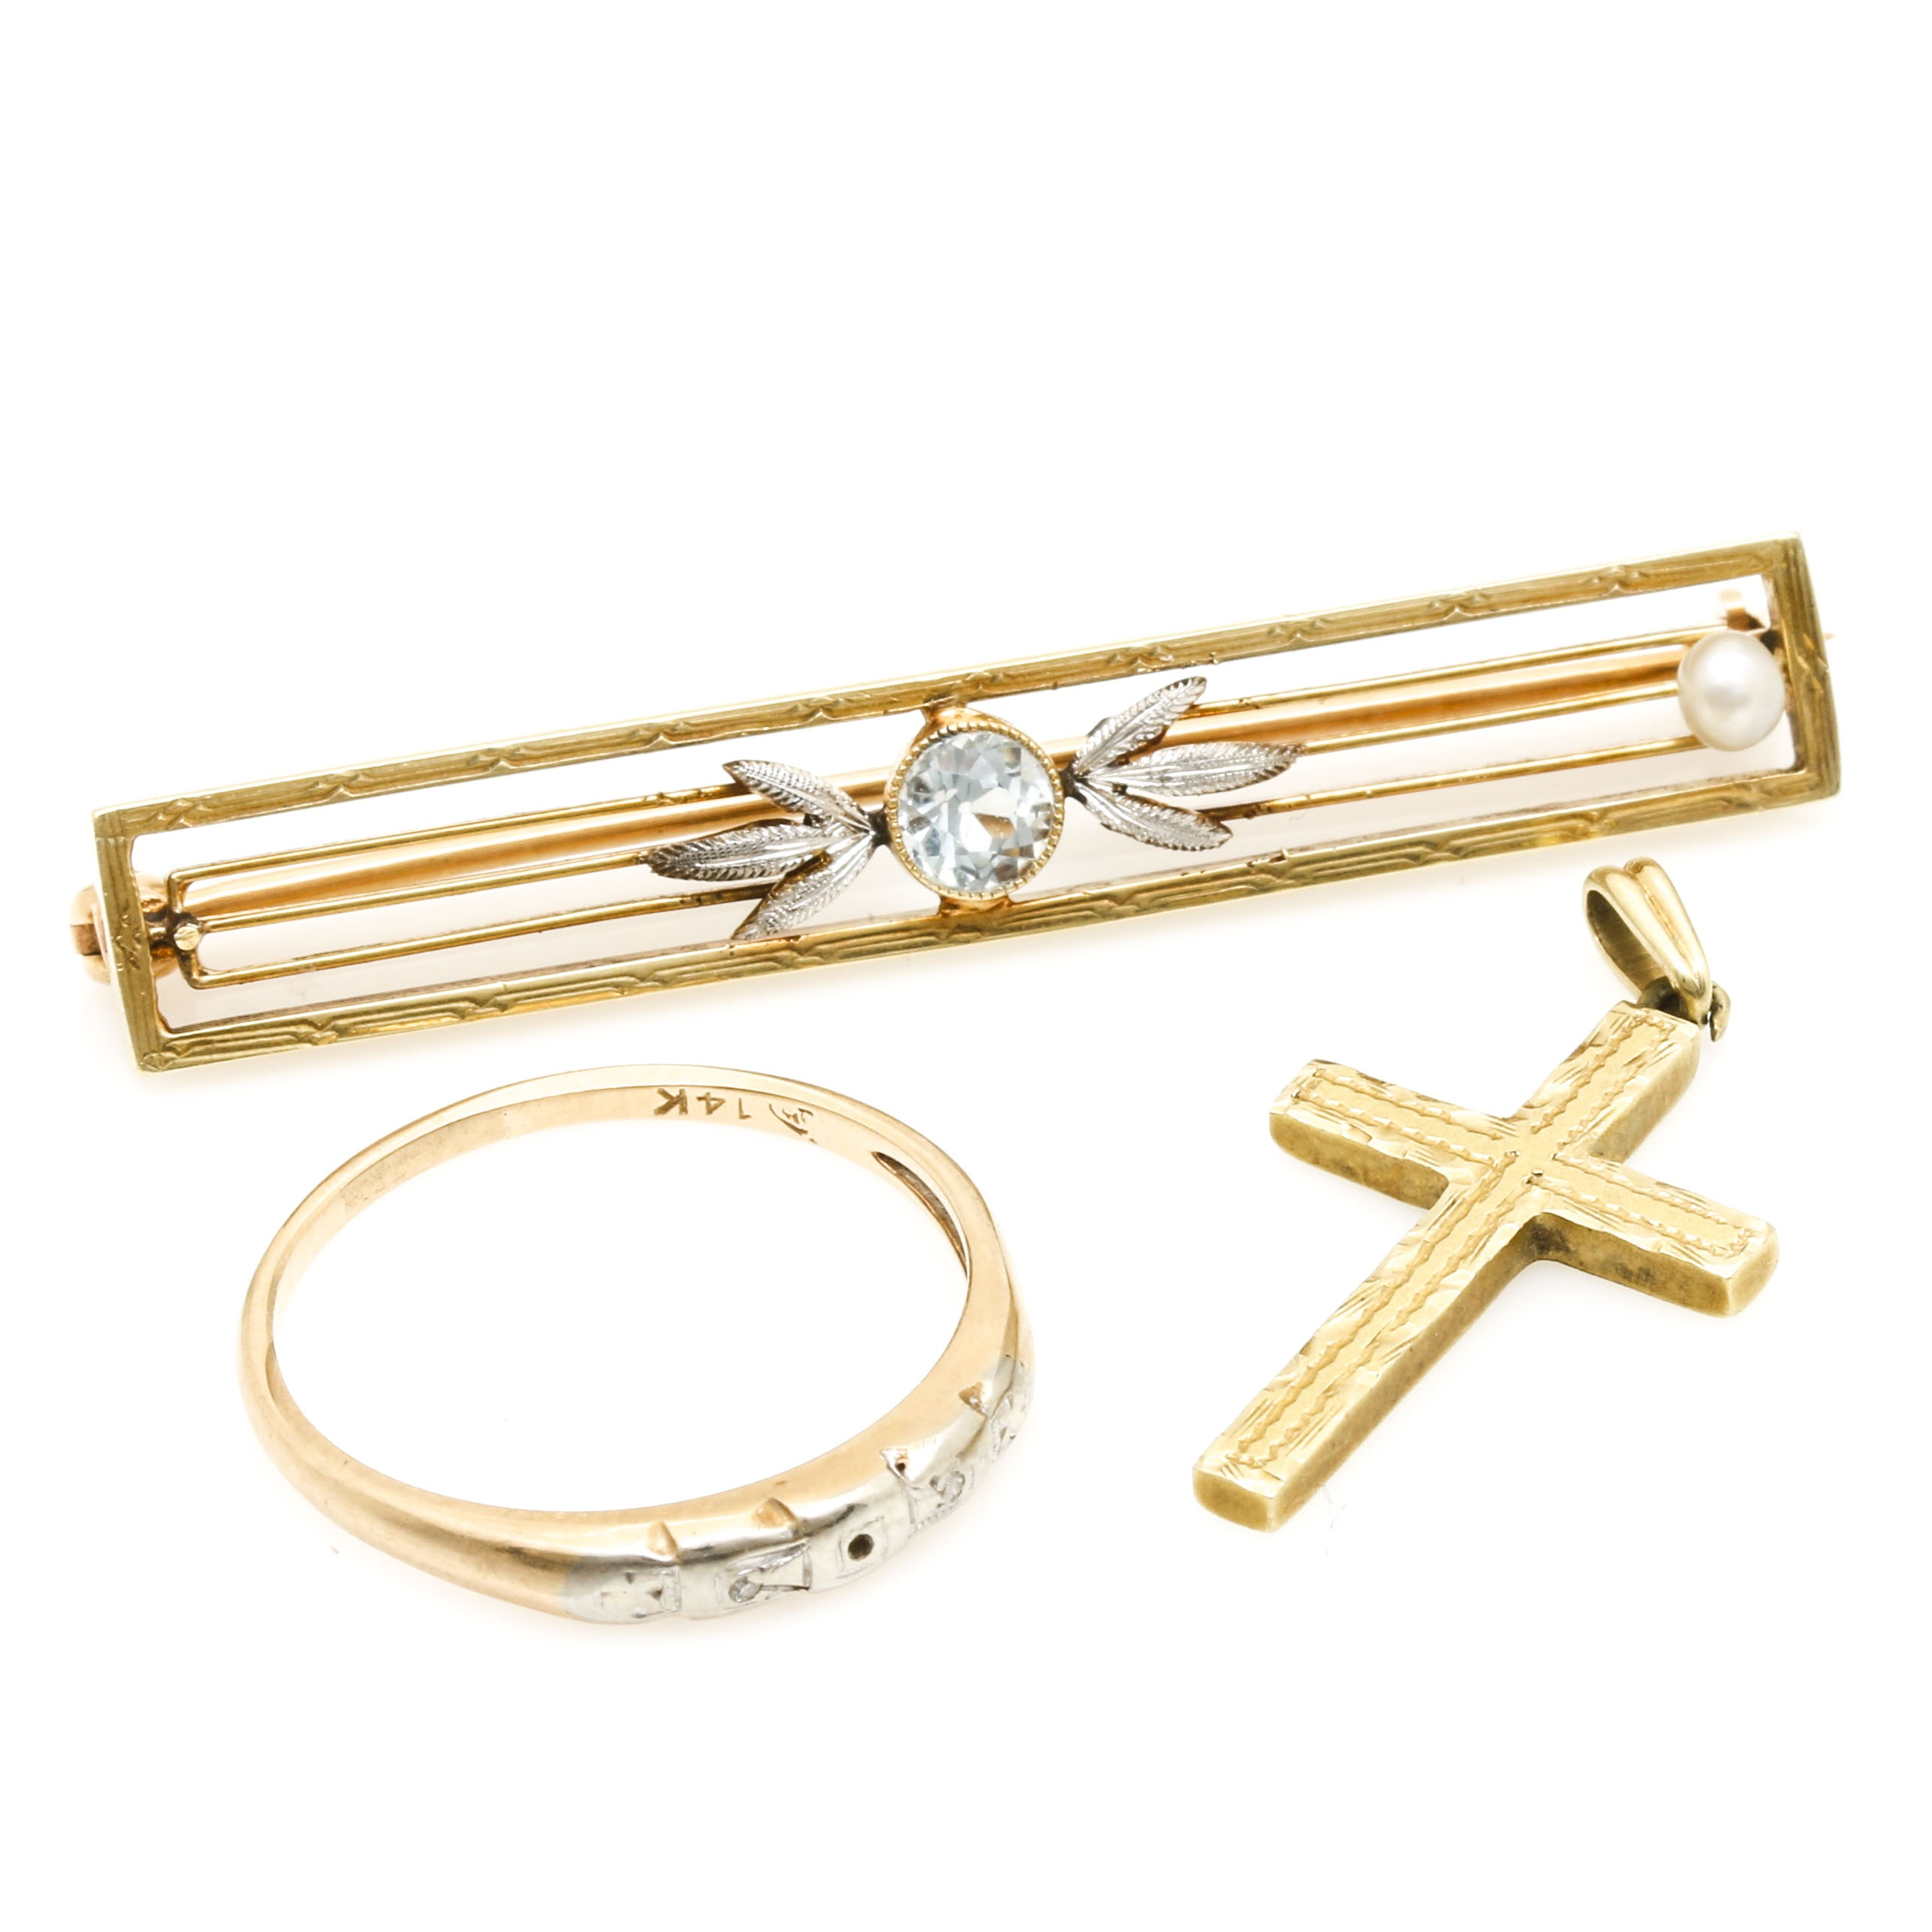 14K Yellow Gold Jewelry Including Diamonds and Aquamarine